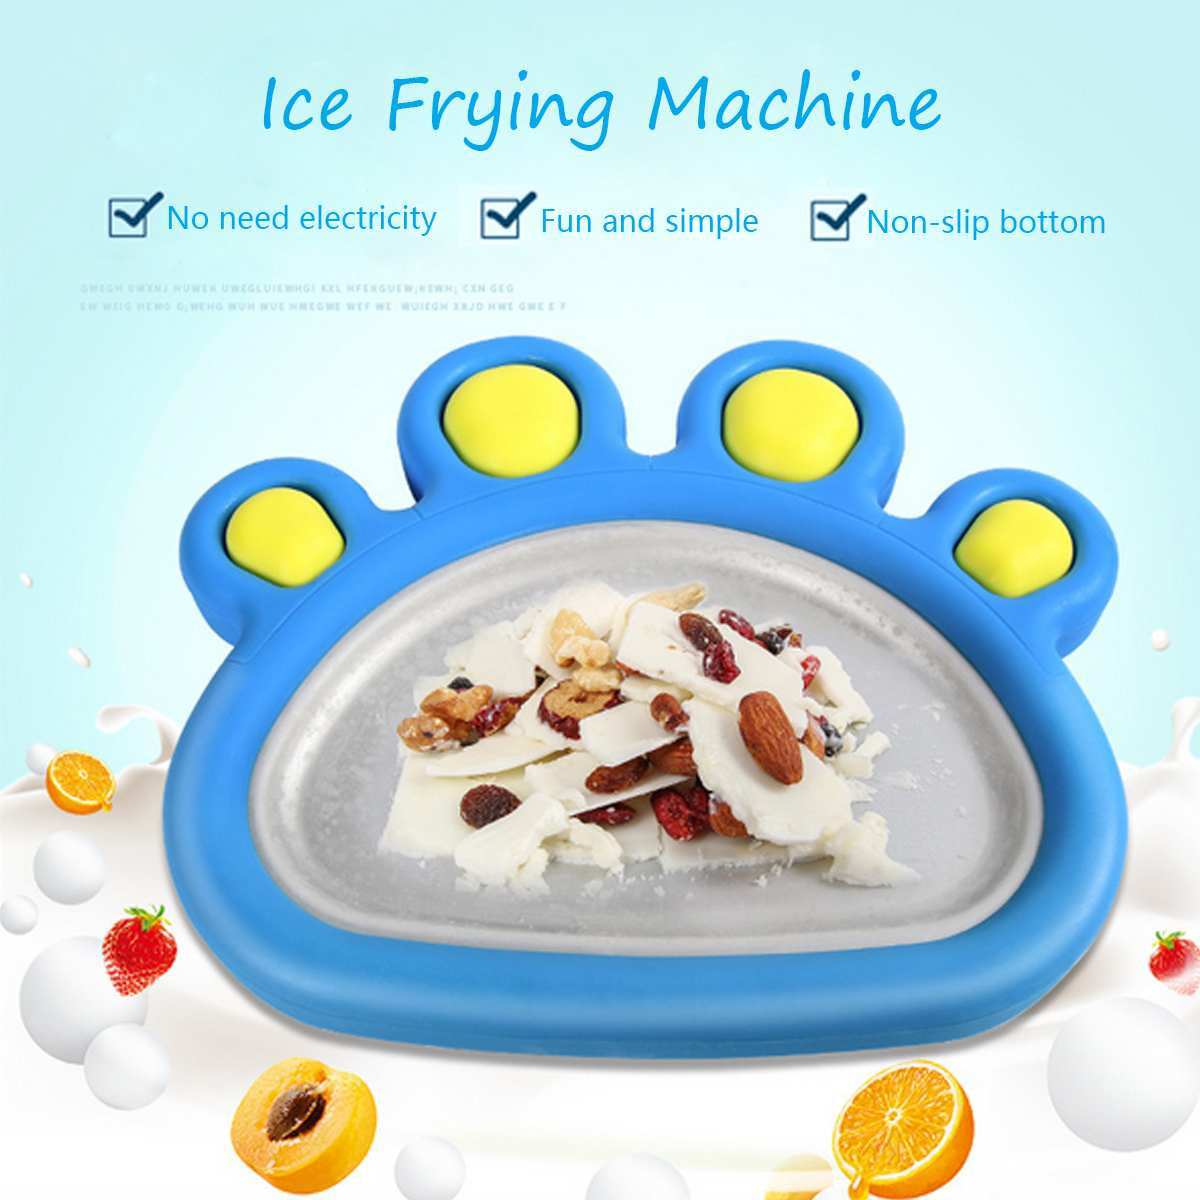 Yogurt Fruit Roll Maker Machine Home Instant Ice Cream Fry Pan Plate + 2 Spade Fast Freeze Surface DIY Food Grade Non-slipYogurt Fruit Roll Maker Machine Home Instant Ice Cream Fry Pan Plate + 2 Spade Fast Freeze Surface DIY Food Grade Non-slip